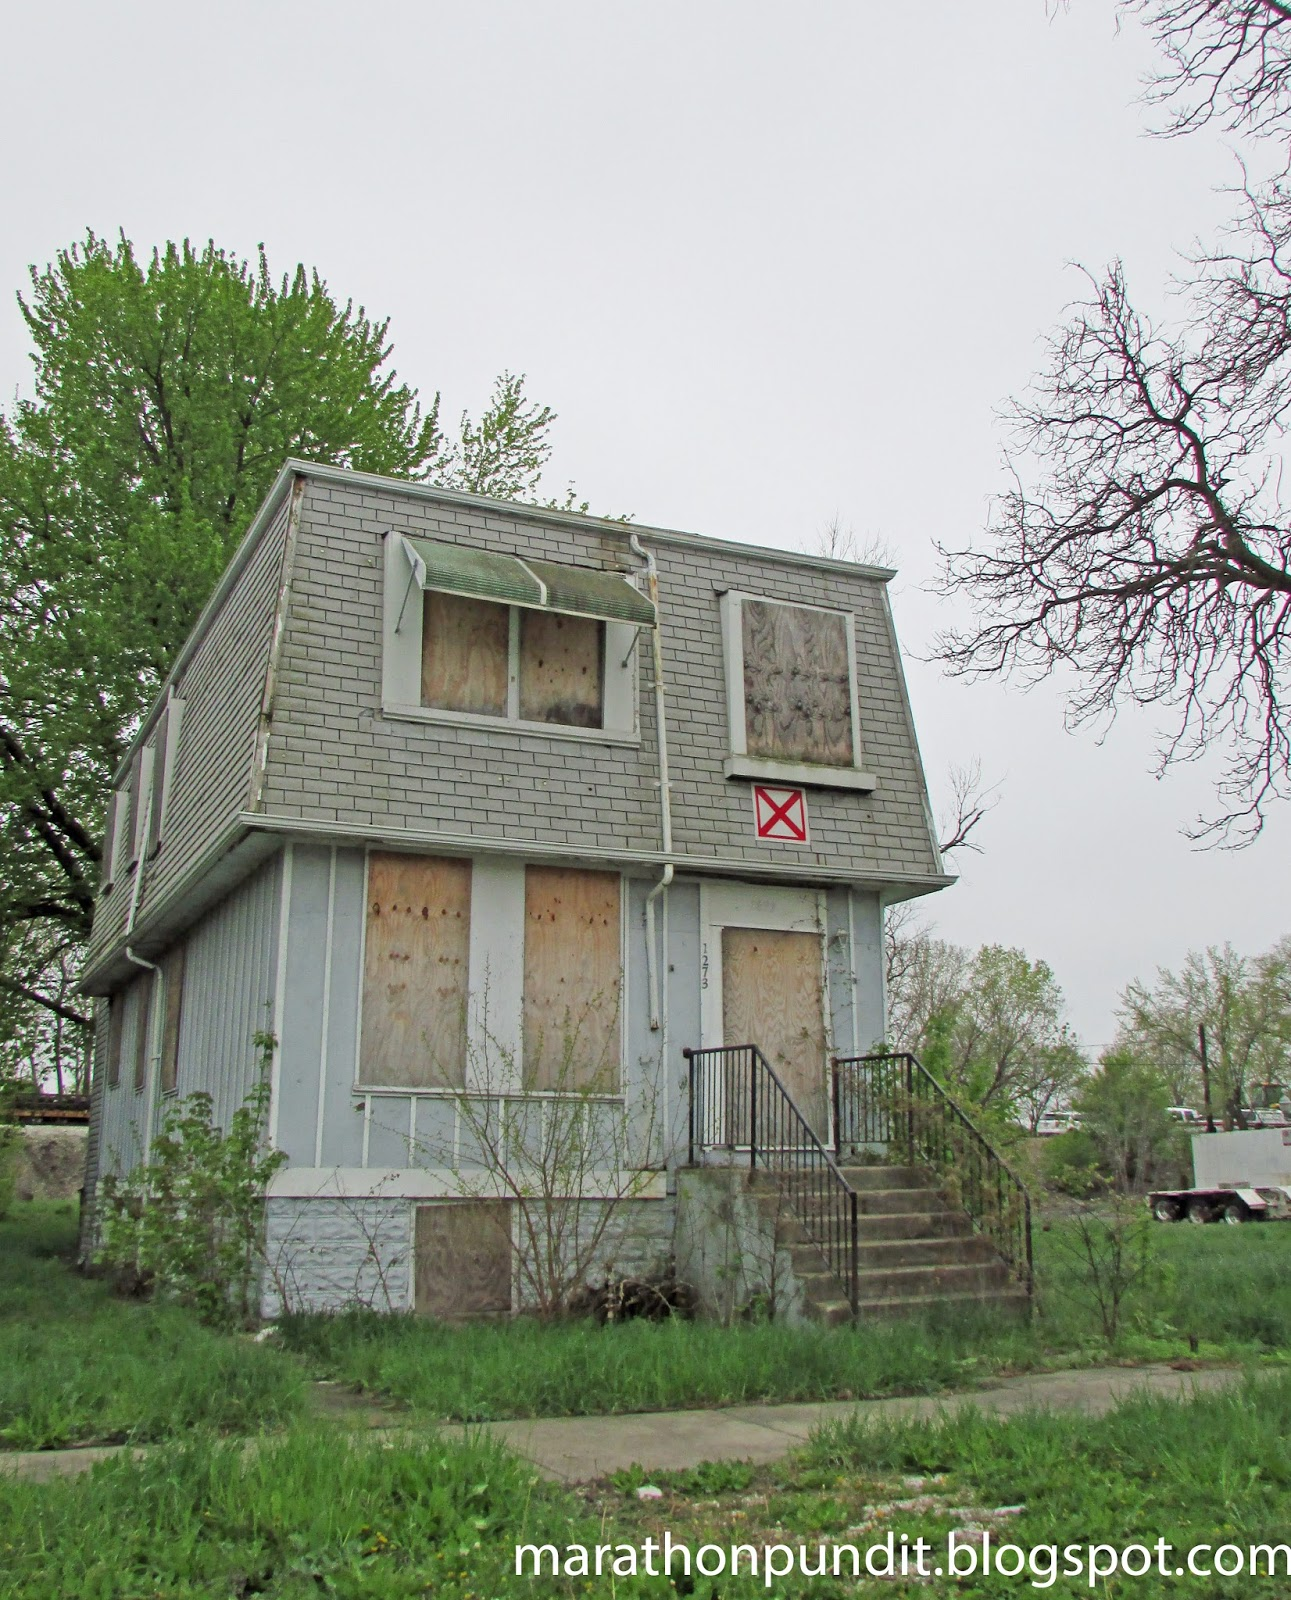 Cheap Haunted Houses Chicago Il: Marathon Pundit: (Photos) The Abandoned Homes Of Chicago's